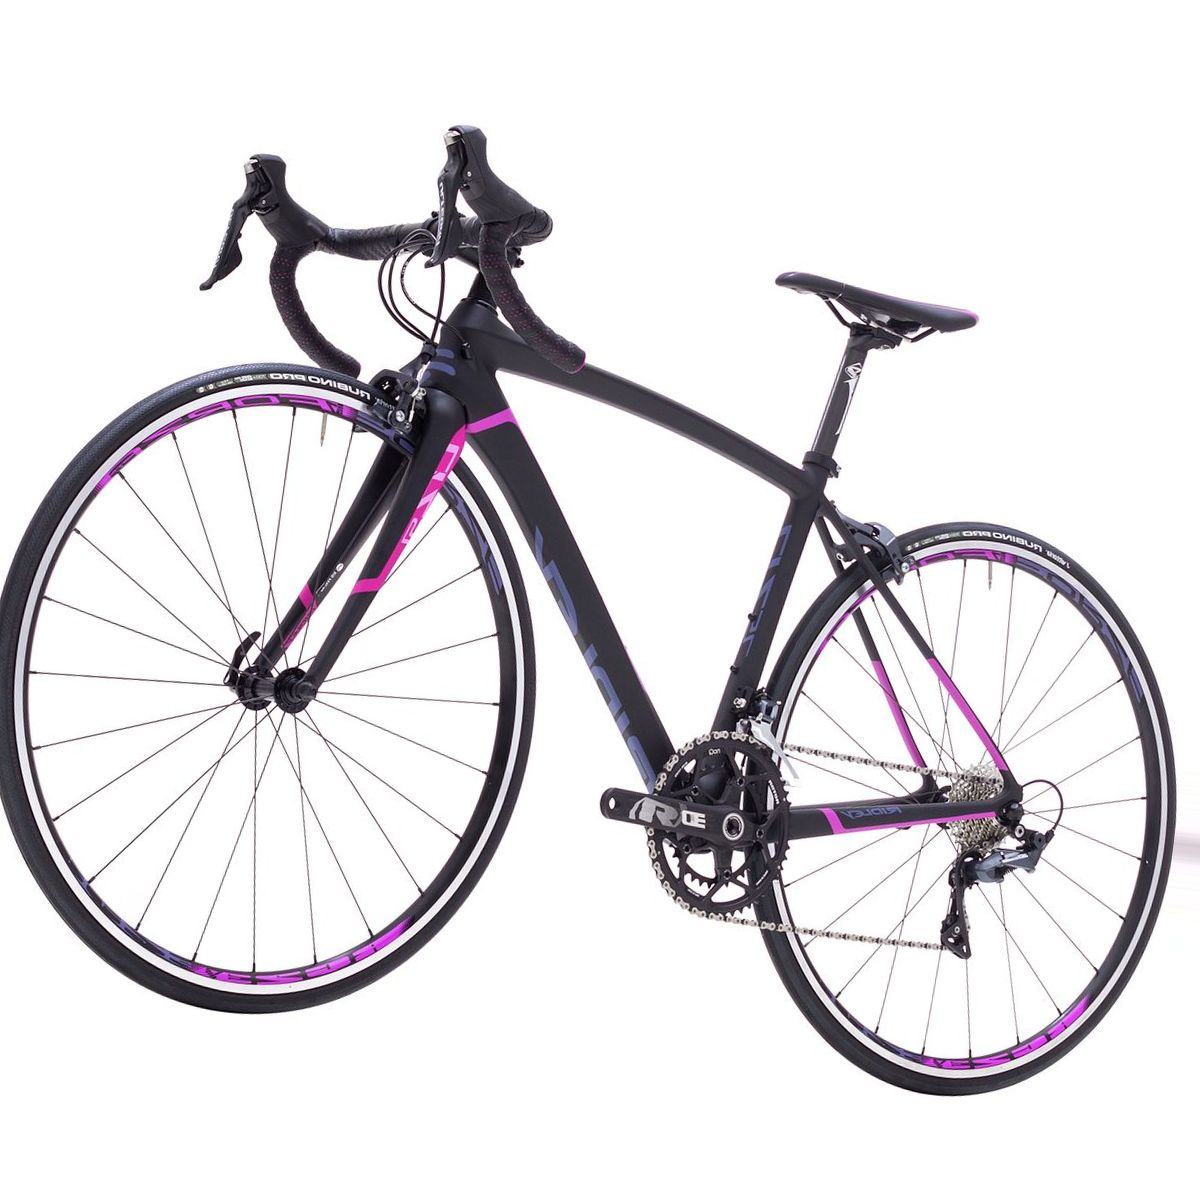 Ridley Liz SL Ultegra Road Bike - Women's